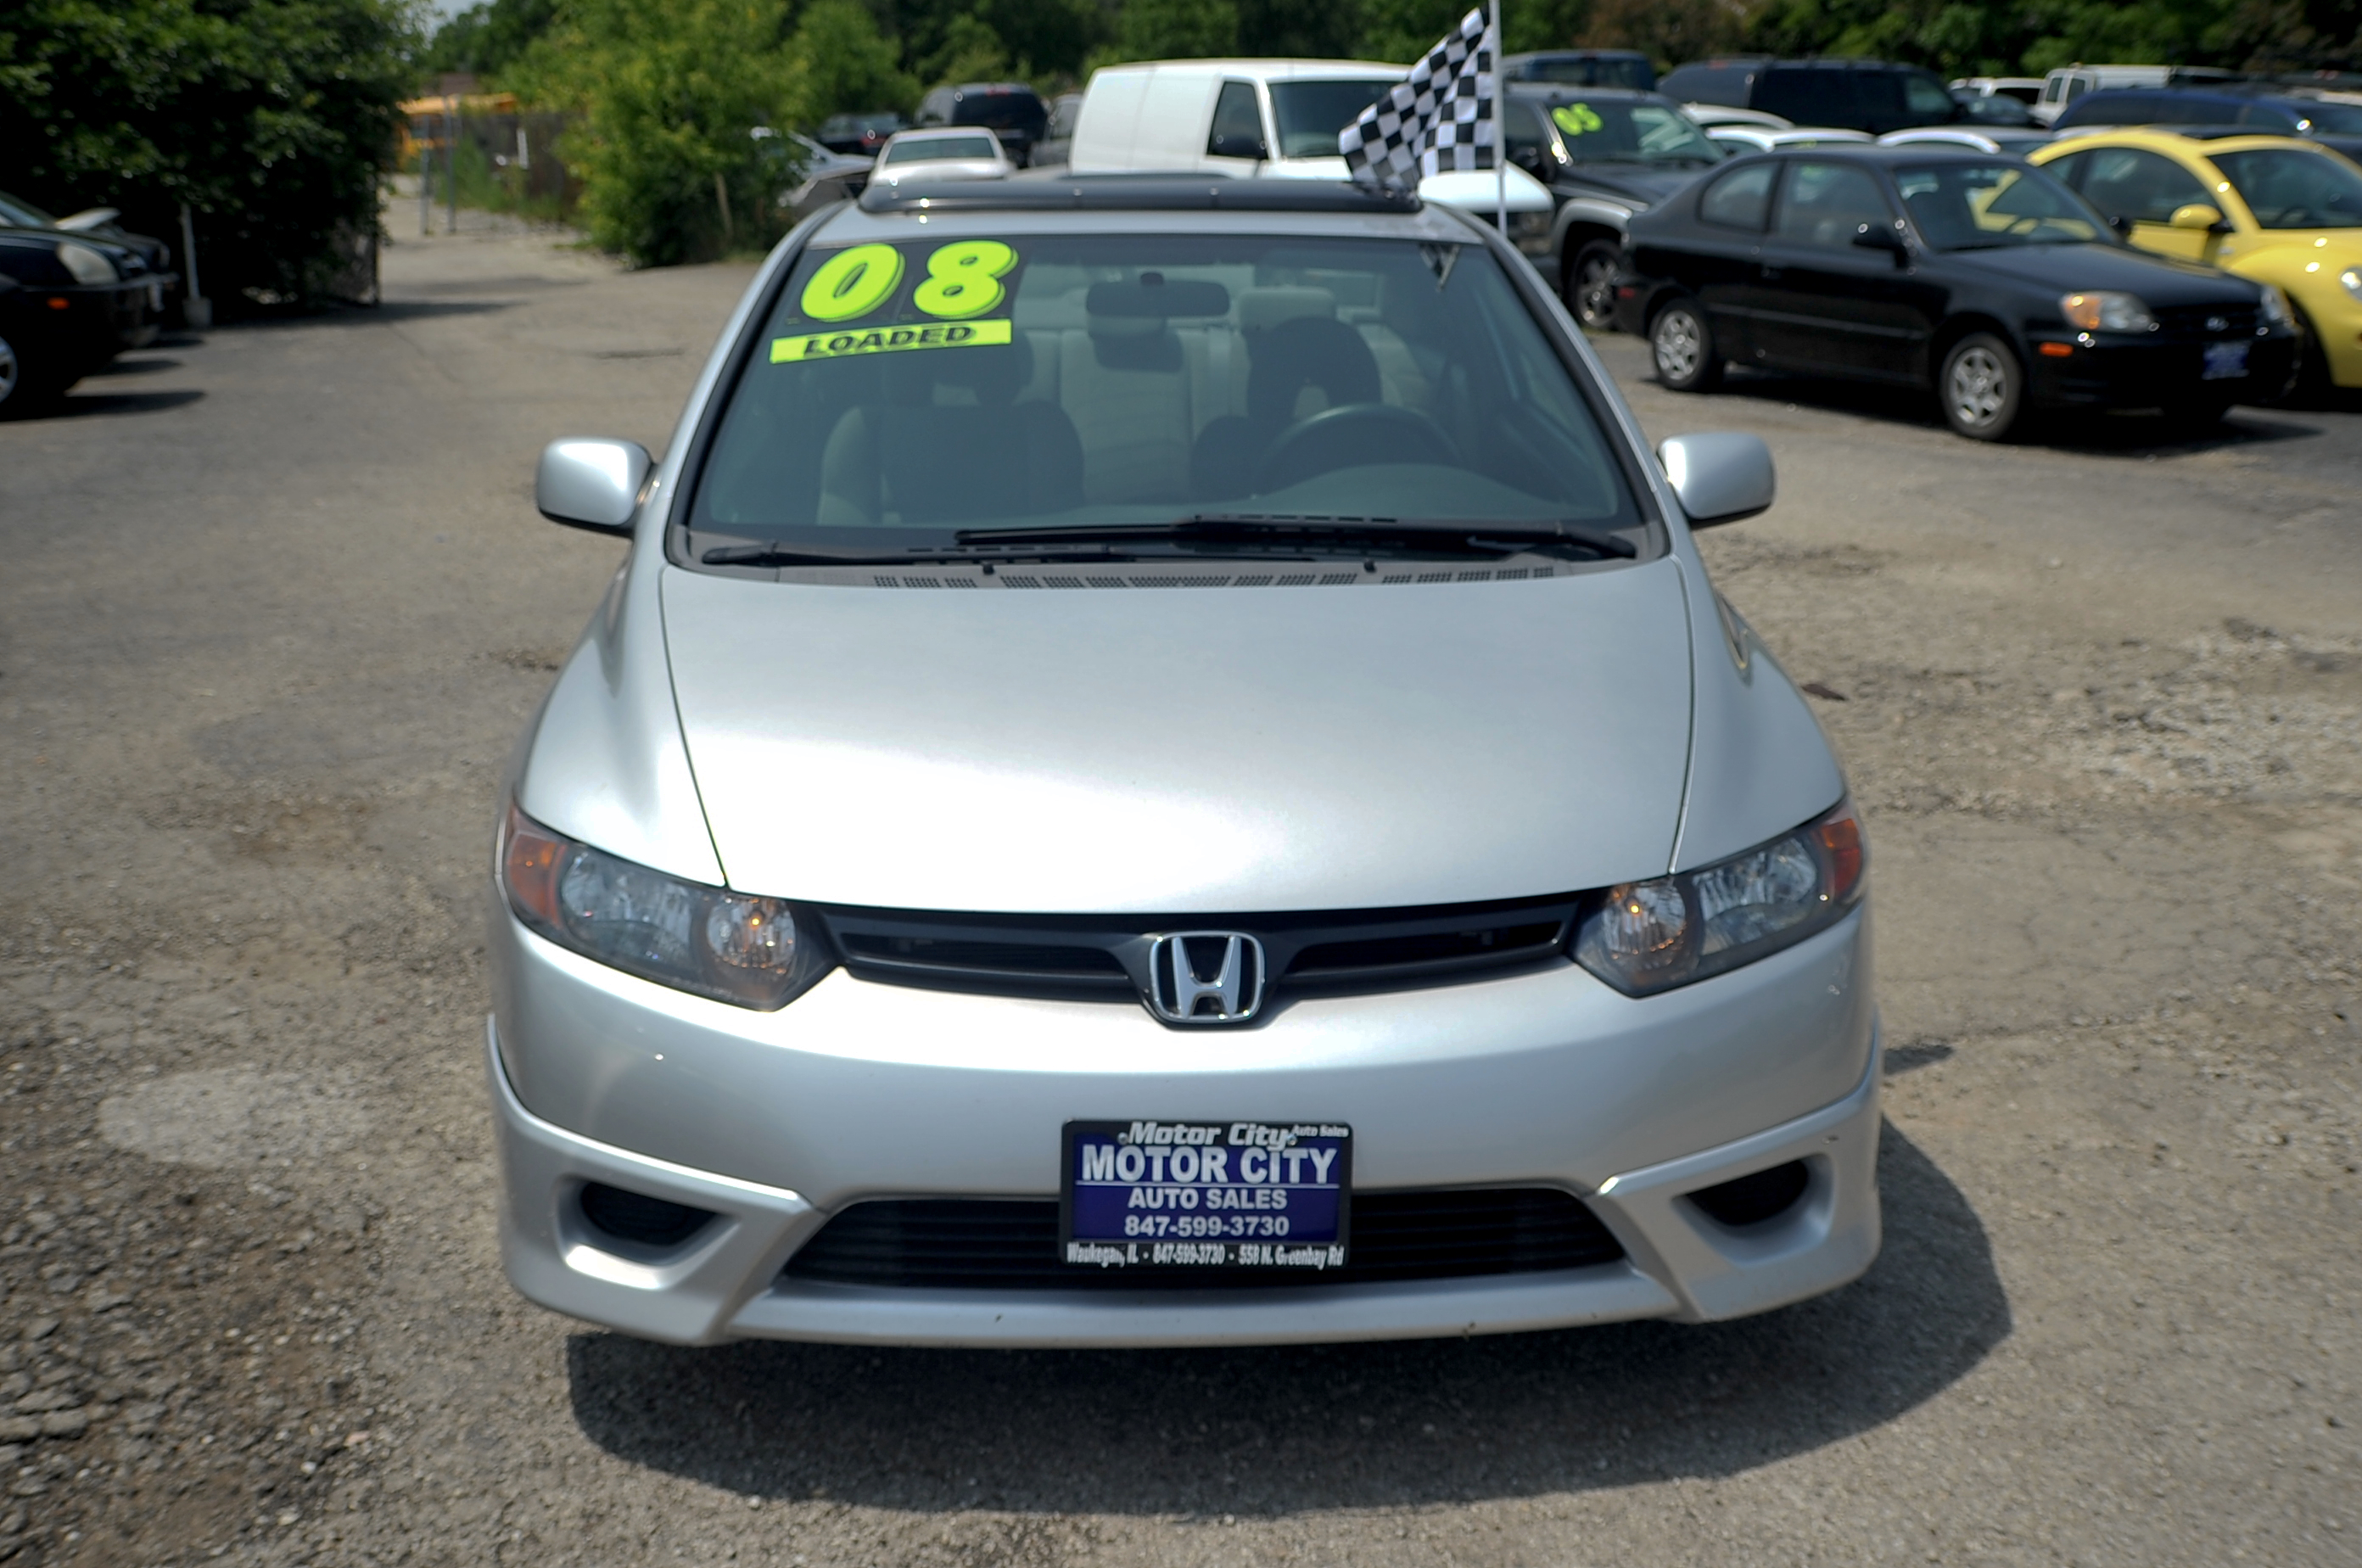 sale hatchback si honda for insurance civic car image info